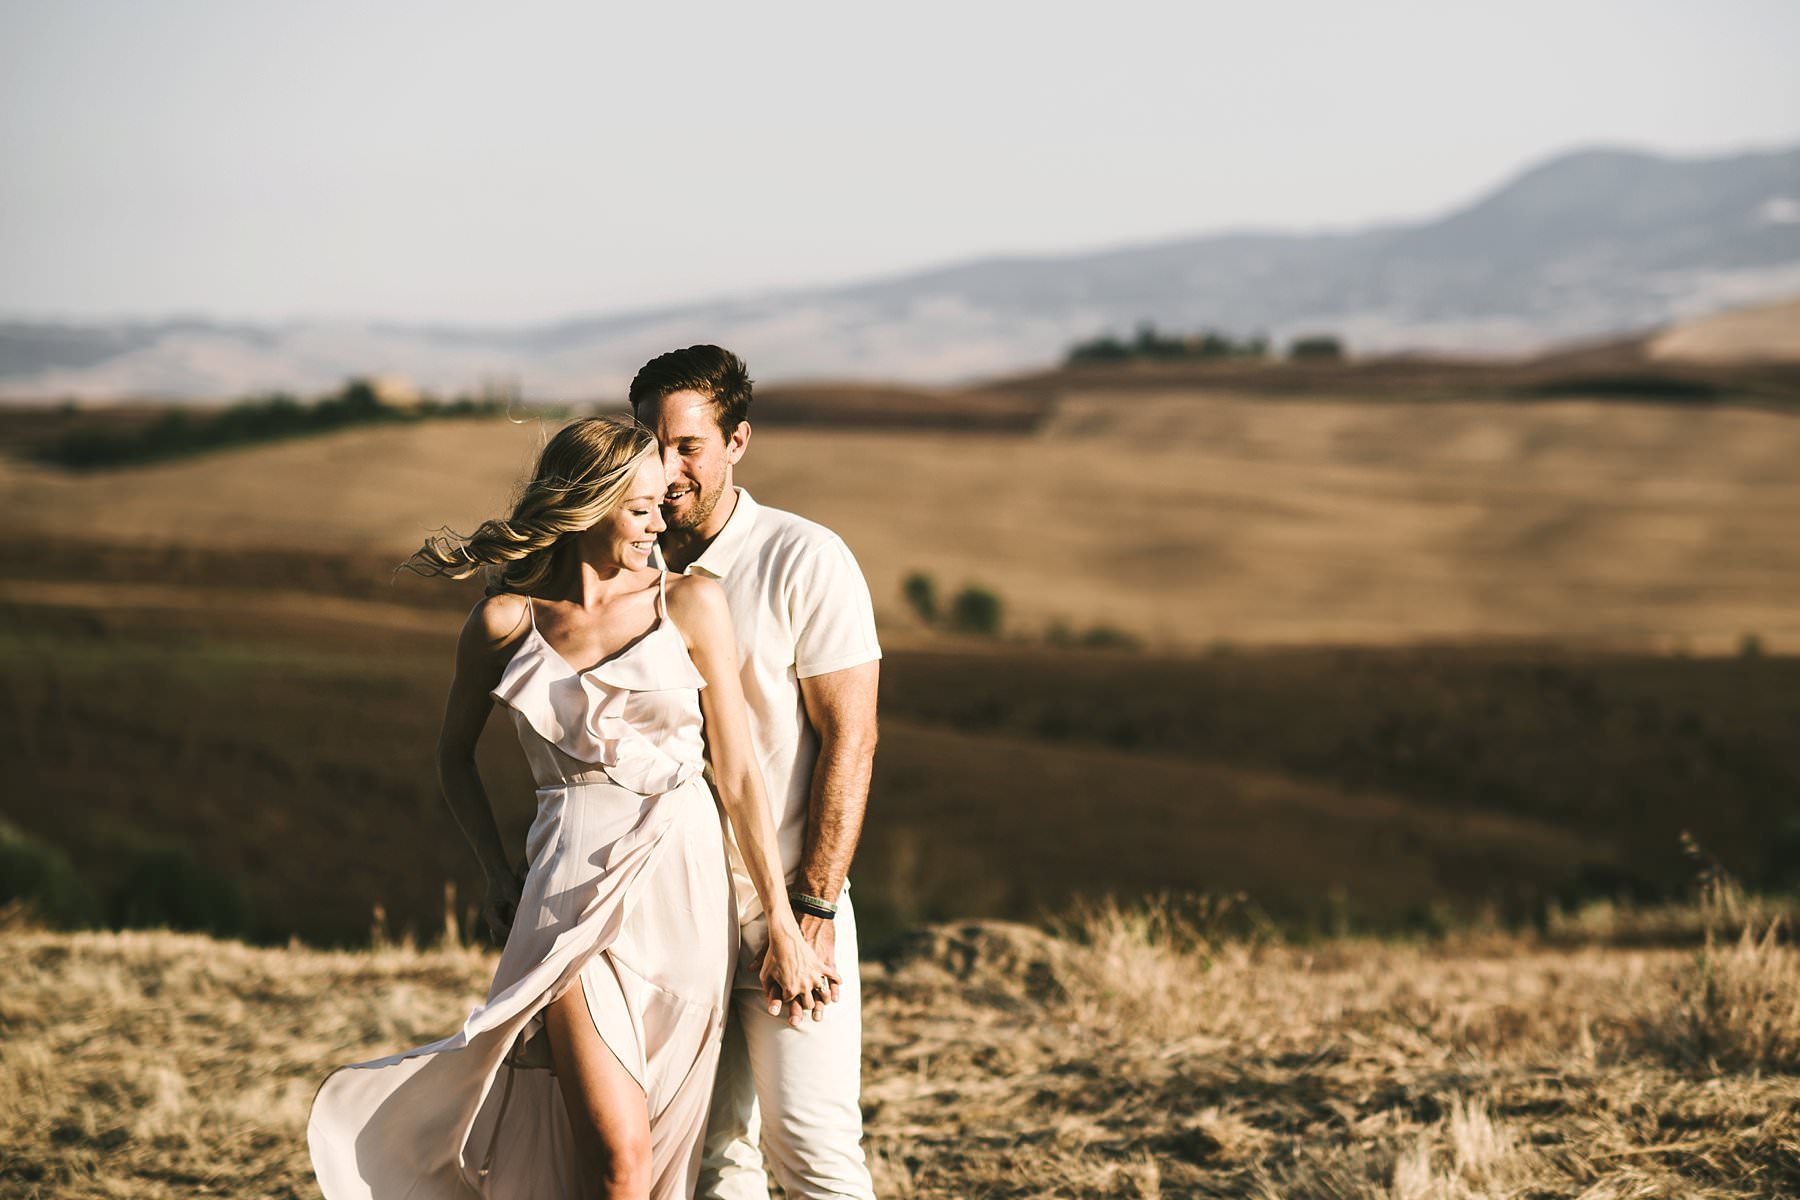 Beautiful, elegant and intimate couple elopement session in Tuscany countryside of Pienza in the Val d'Orcia